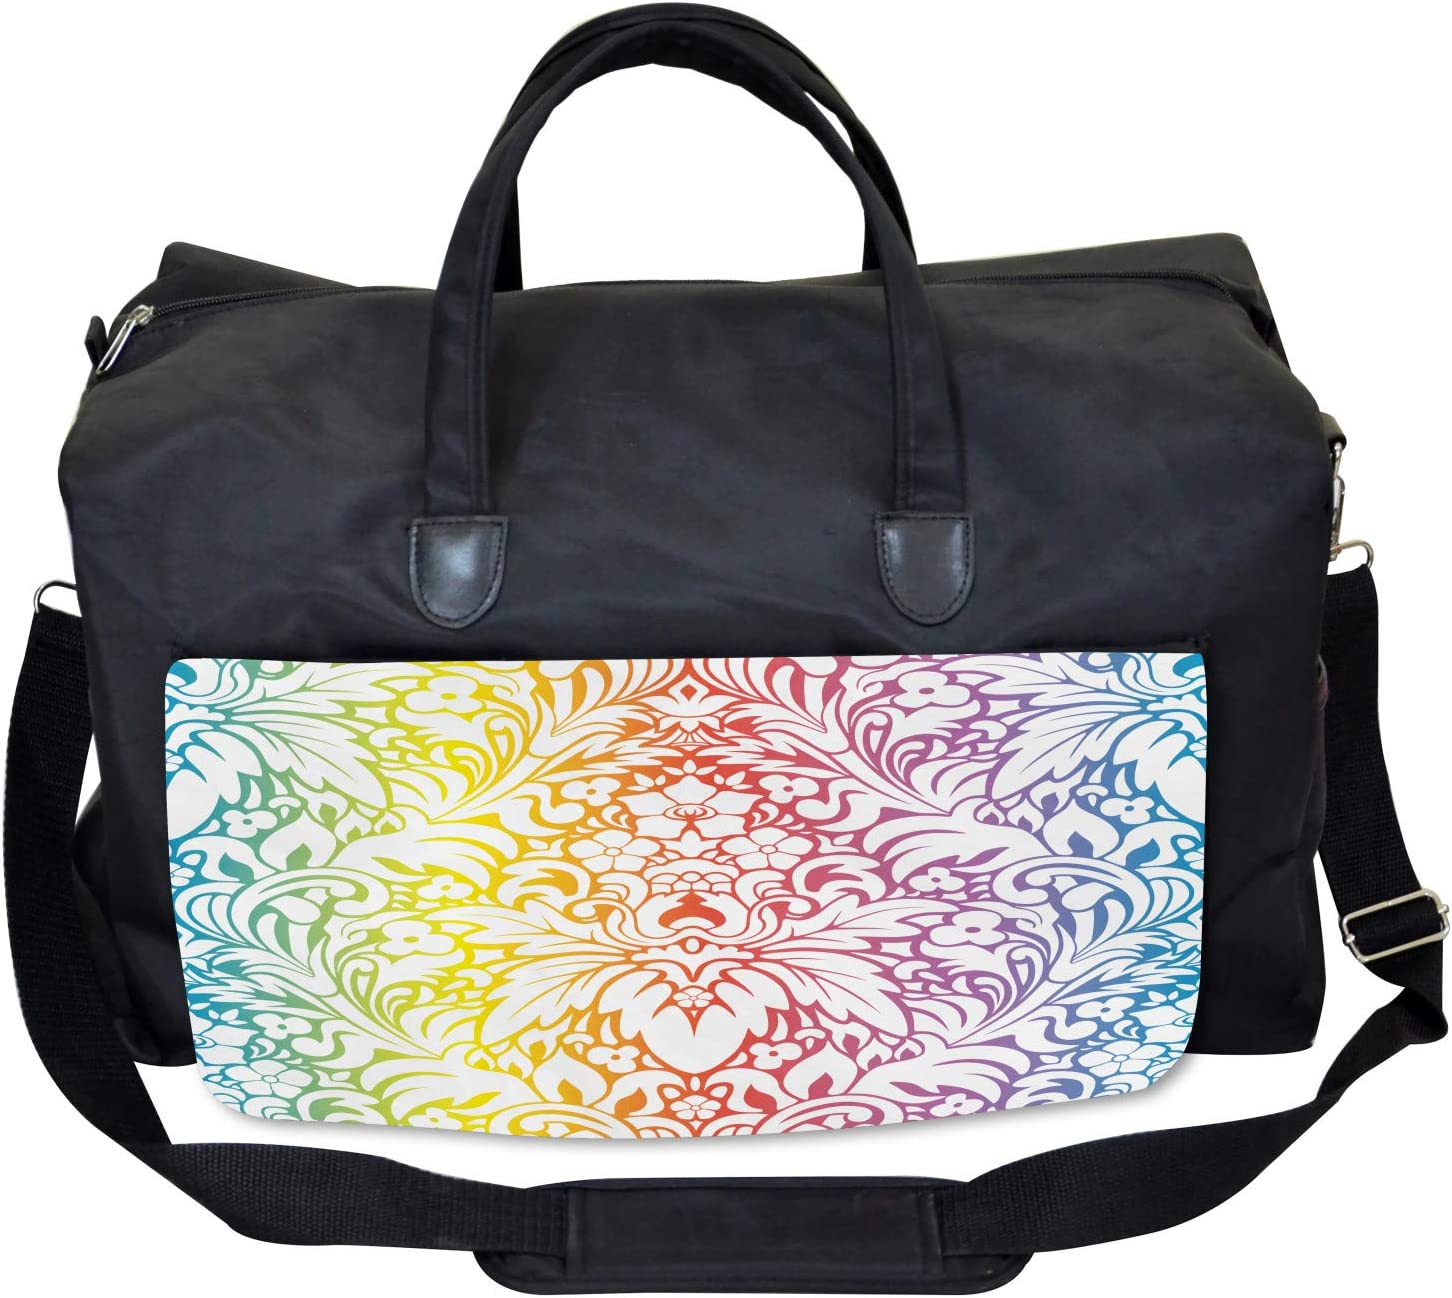 Colorful Damask Flowers Large Weekender Carry-on Ambesonne Floral Gym Bag